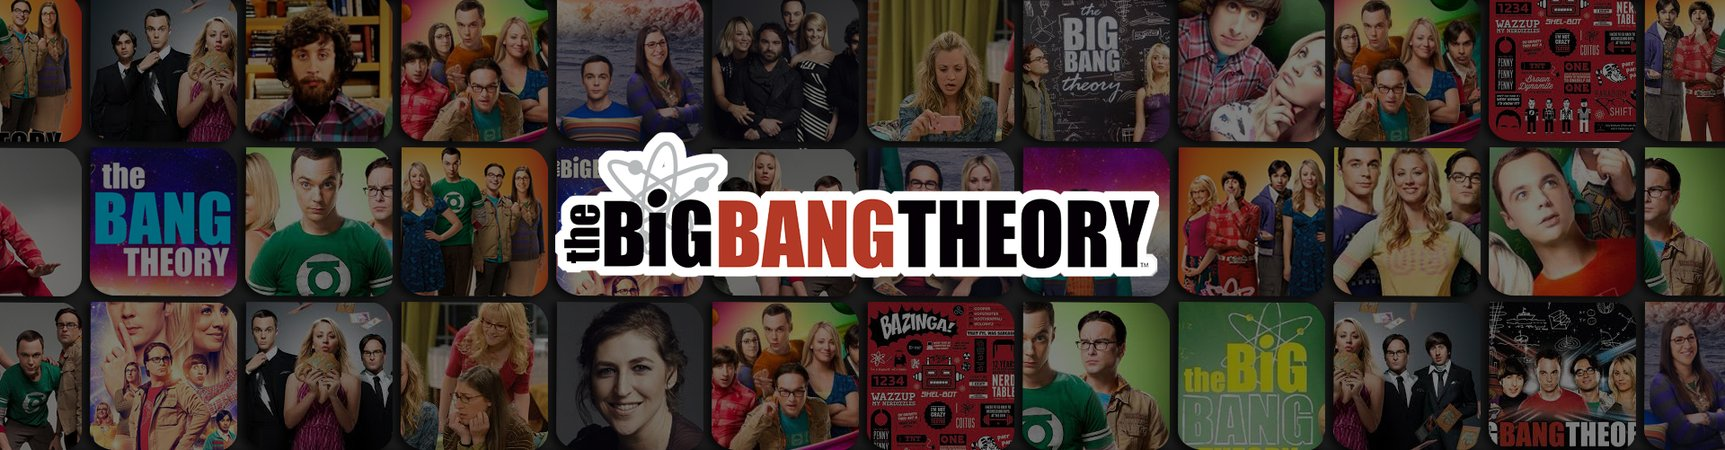 The Big Bang Theory Notebooks